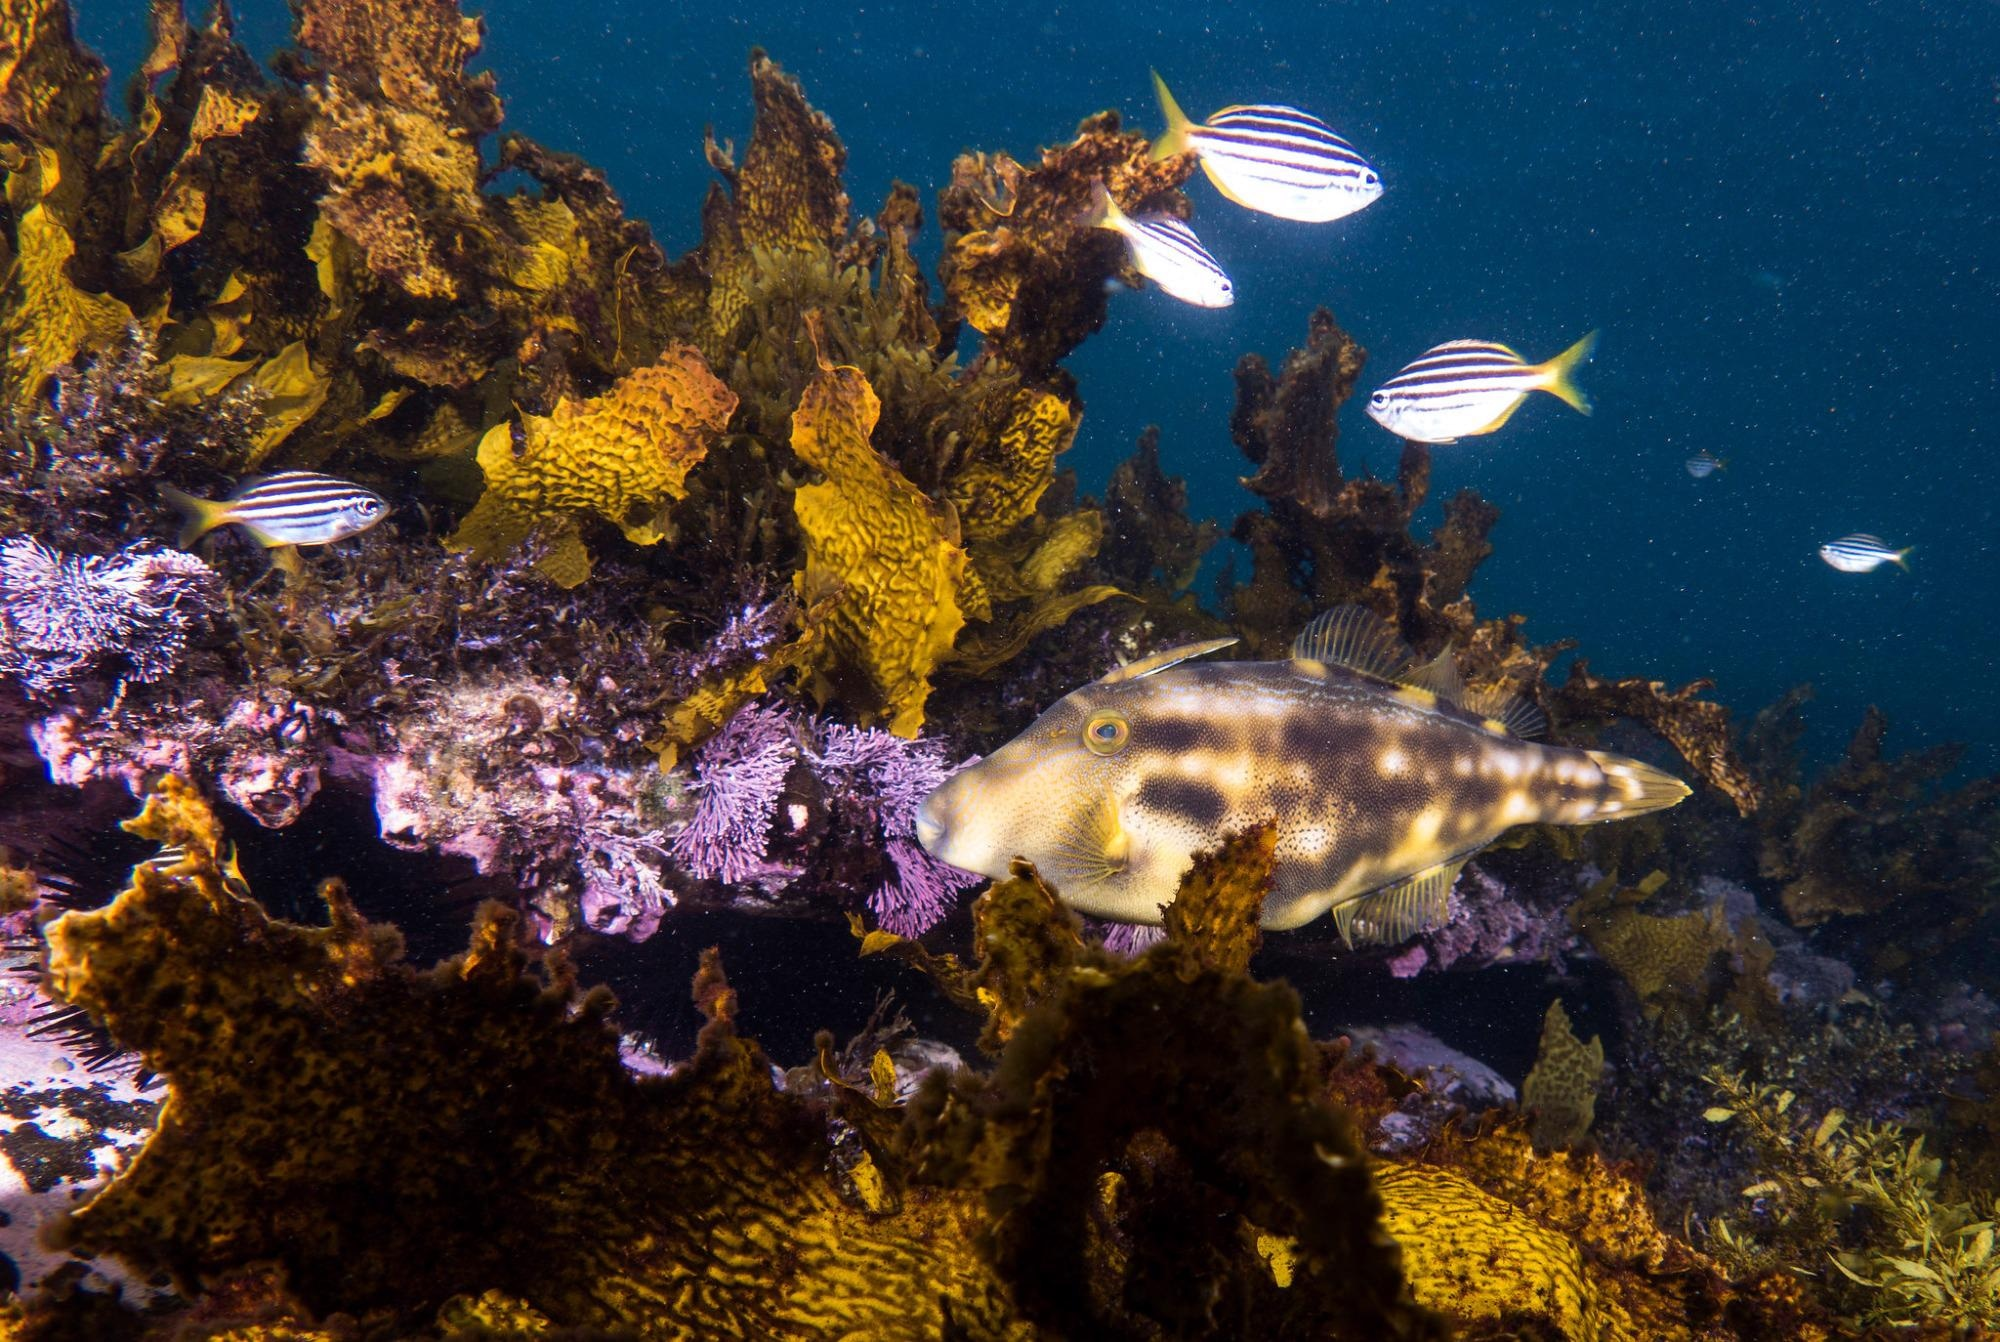 Are Partially Protected Areas the 'red herrings' of Marine Conservation?